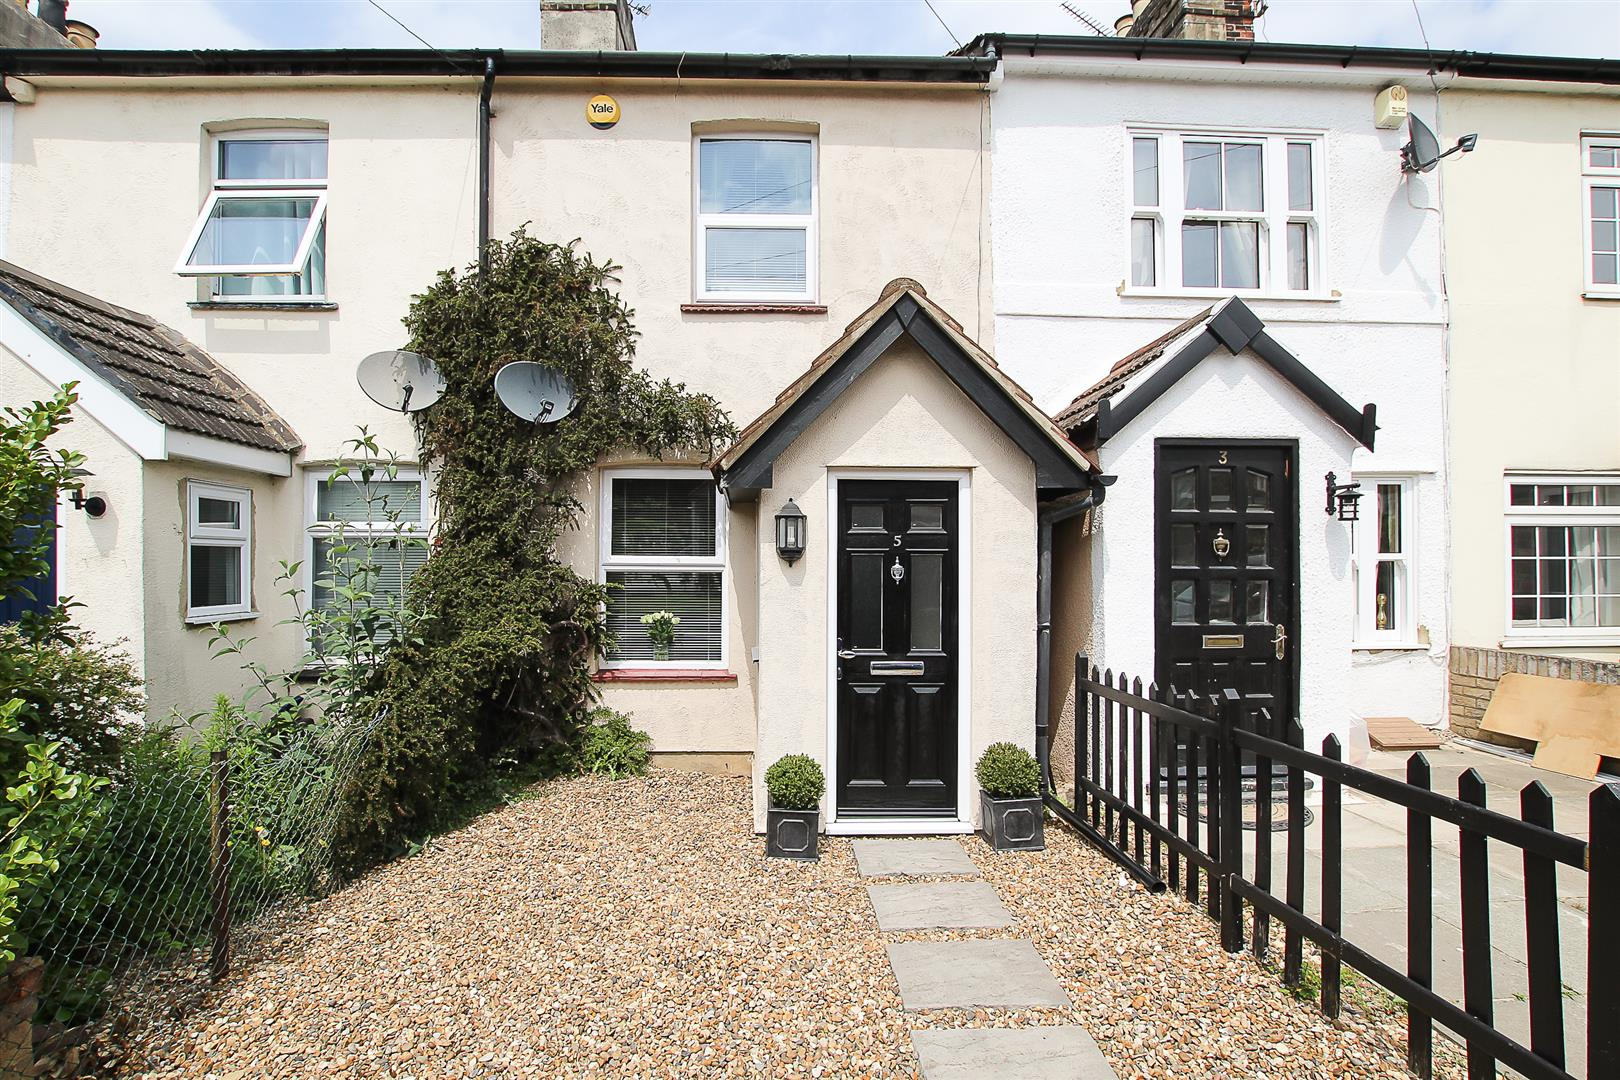 Cromwell Road, Warley, Brentwood